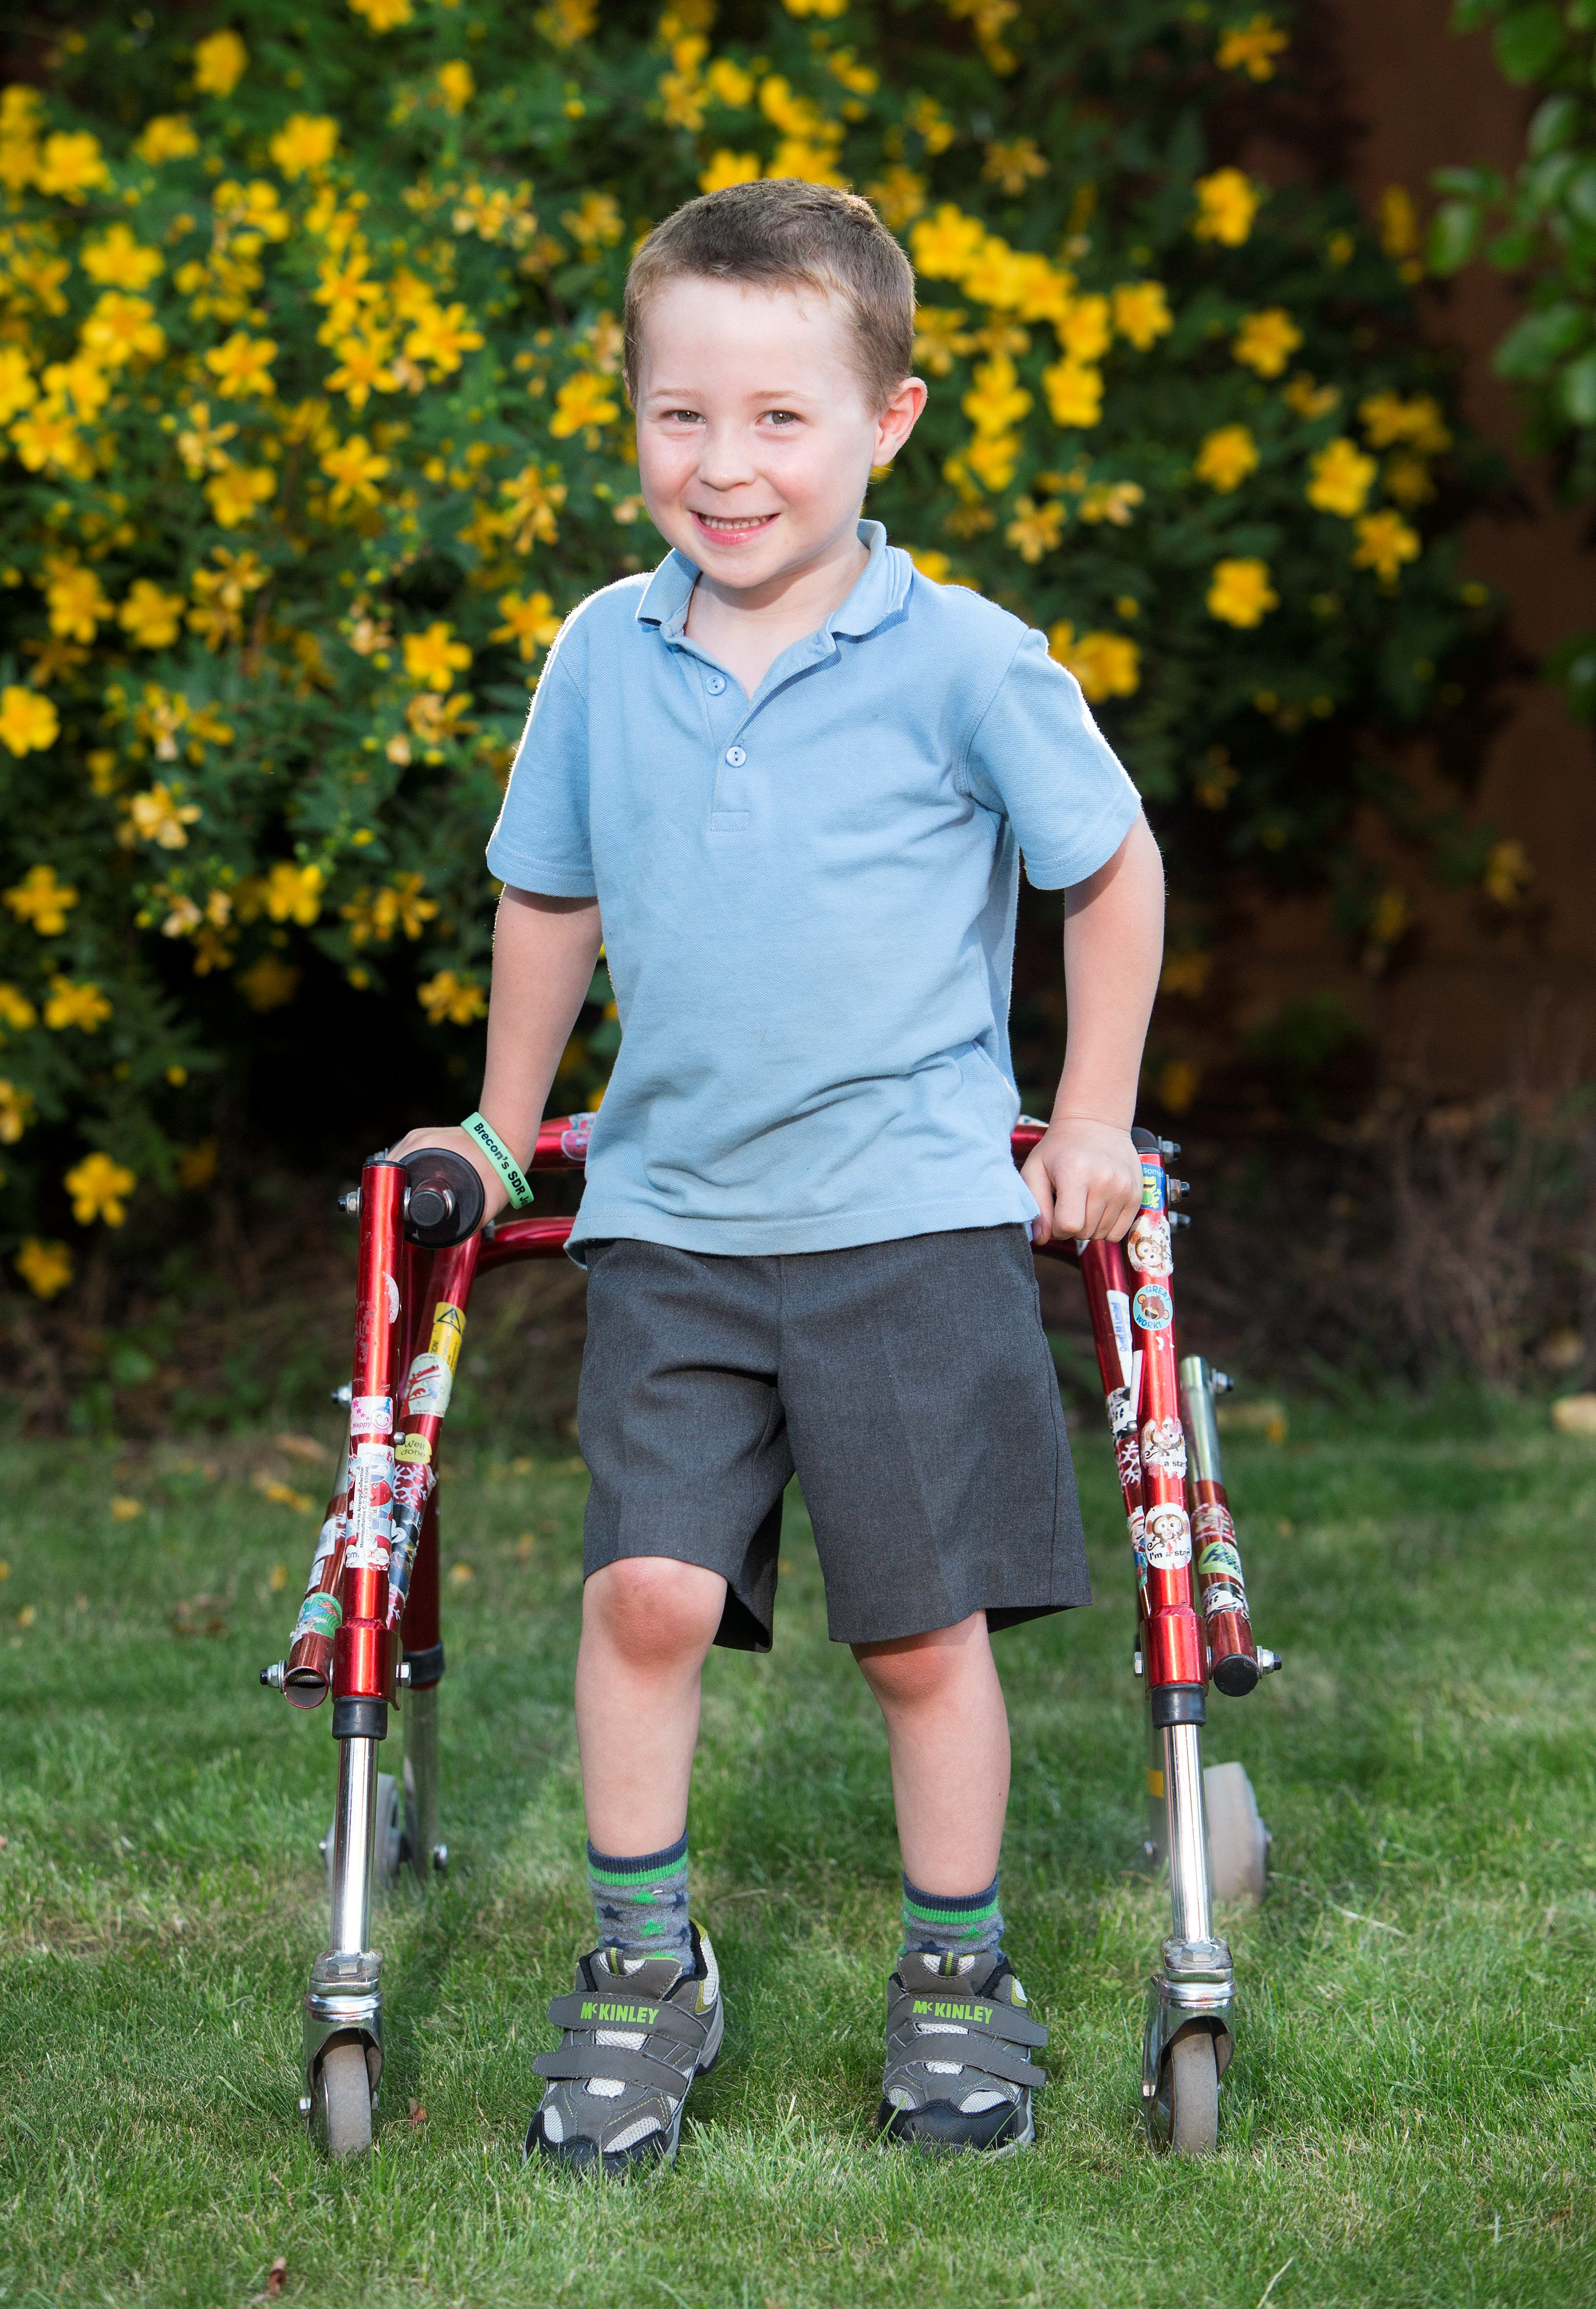 Brecon Vaughan, 5, Chepstow. Dan Black, 25, will donate £20,000 to five year old Brecon Vaughan who needs pioneering surgery for a condition called spastic diplegia cerebral palsy. See SWNS story SWWALK; A paralysed man has given up his dreams of ever walking again - to help a young lad fund pioneering surgery that could help him take his first steps unaided. Generous Dan Black, 25, gave a massive £20,000 - the sum of all the fundraising endeavours of his family and friends - to five-year-old Brecon Vaughan, who desperate to be able to walk. Brecon is over the moon that stranger Dan gave him a third of the £60,000 he needs to pay for an op that would help his debilitating medical condition. Young Brecon, who suffers from rare spastic diplegia cerebral palsy, has to use a specially-designed walking frame as he suffers terribly with stiffness in his legs, as well as poor balance and coordination.